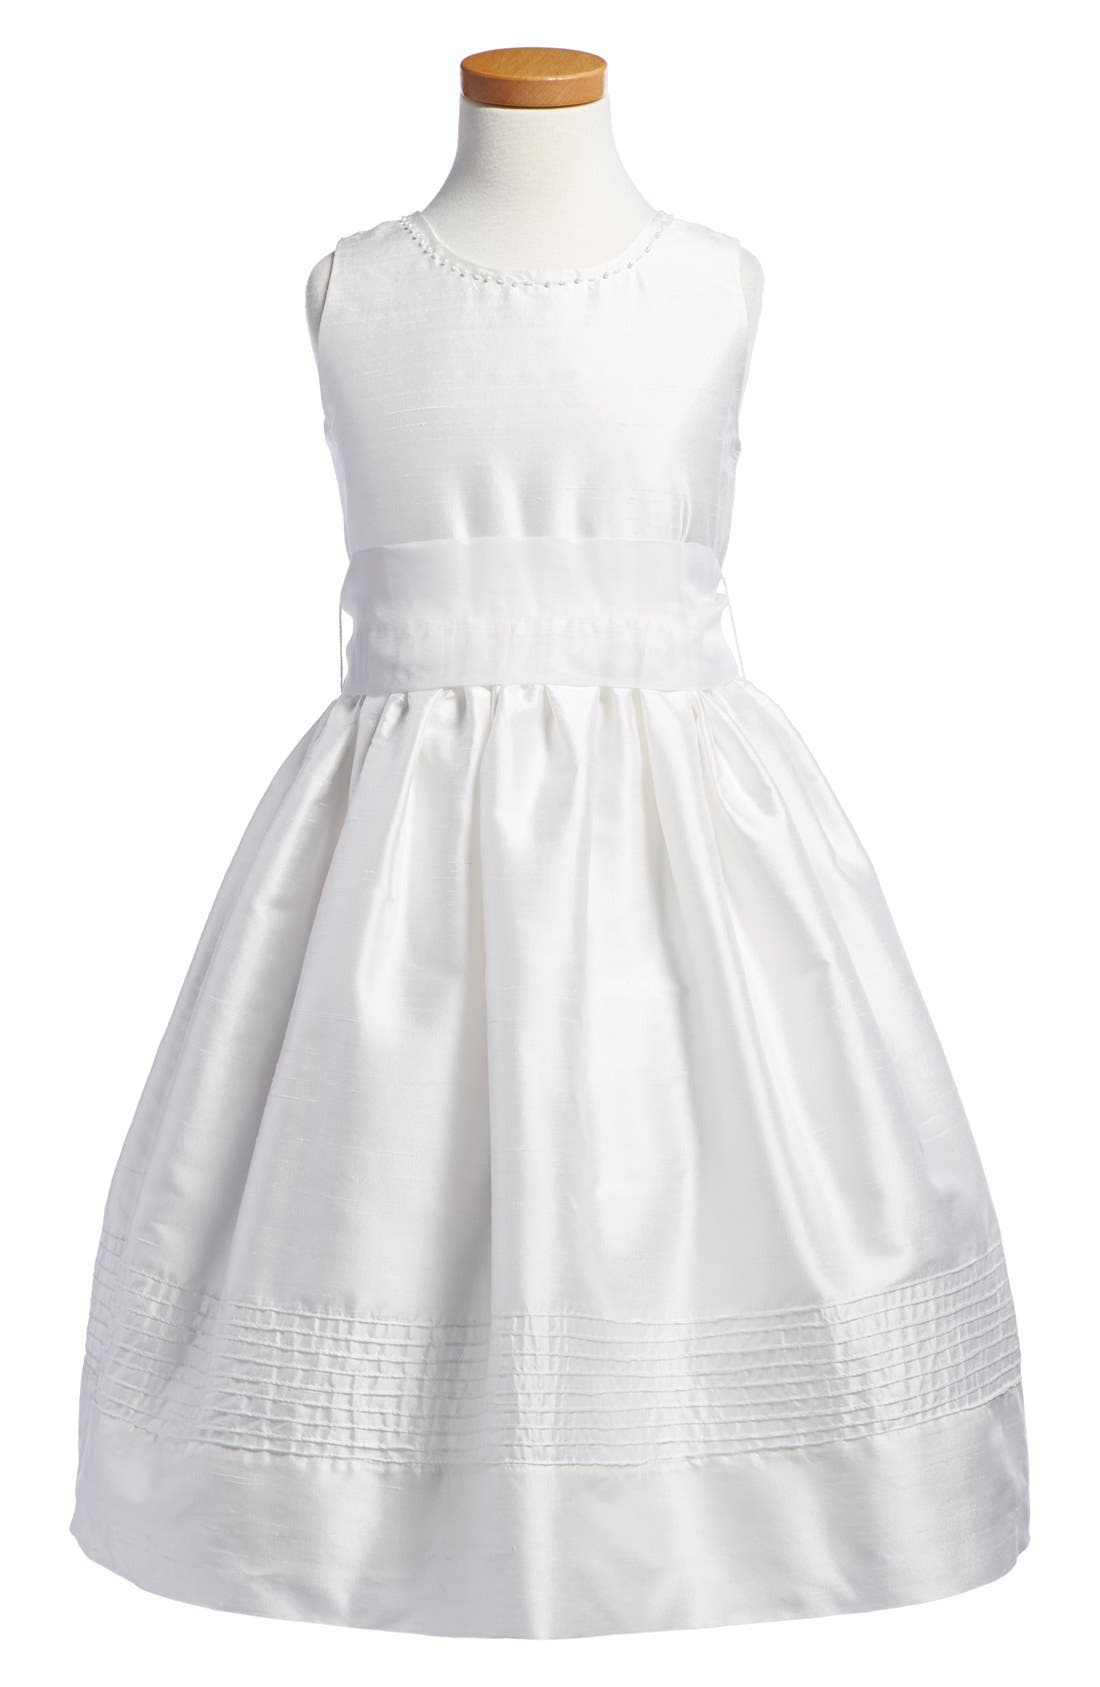 'Melody' Sleeveless Dress,                         Main,                         color, White